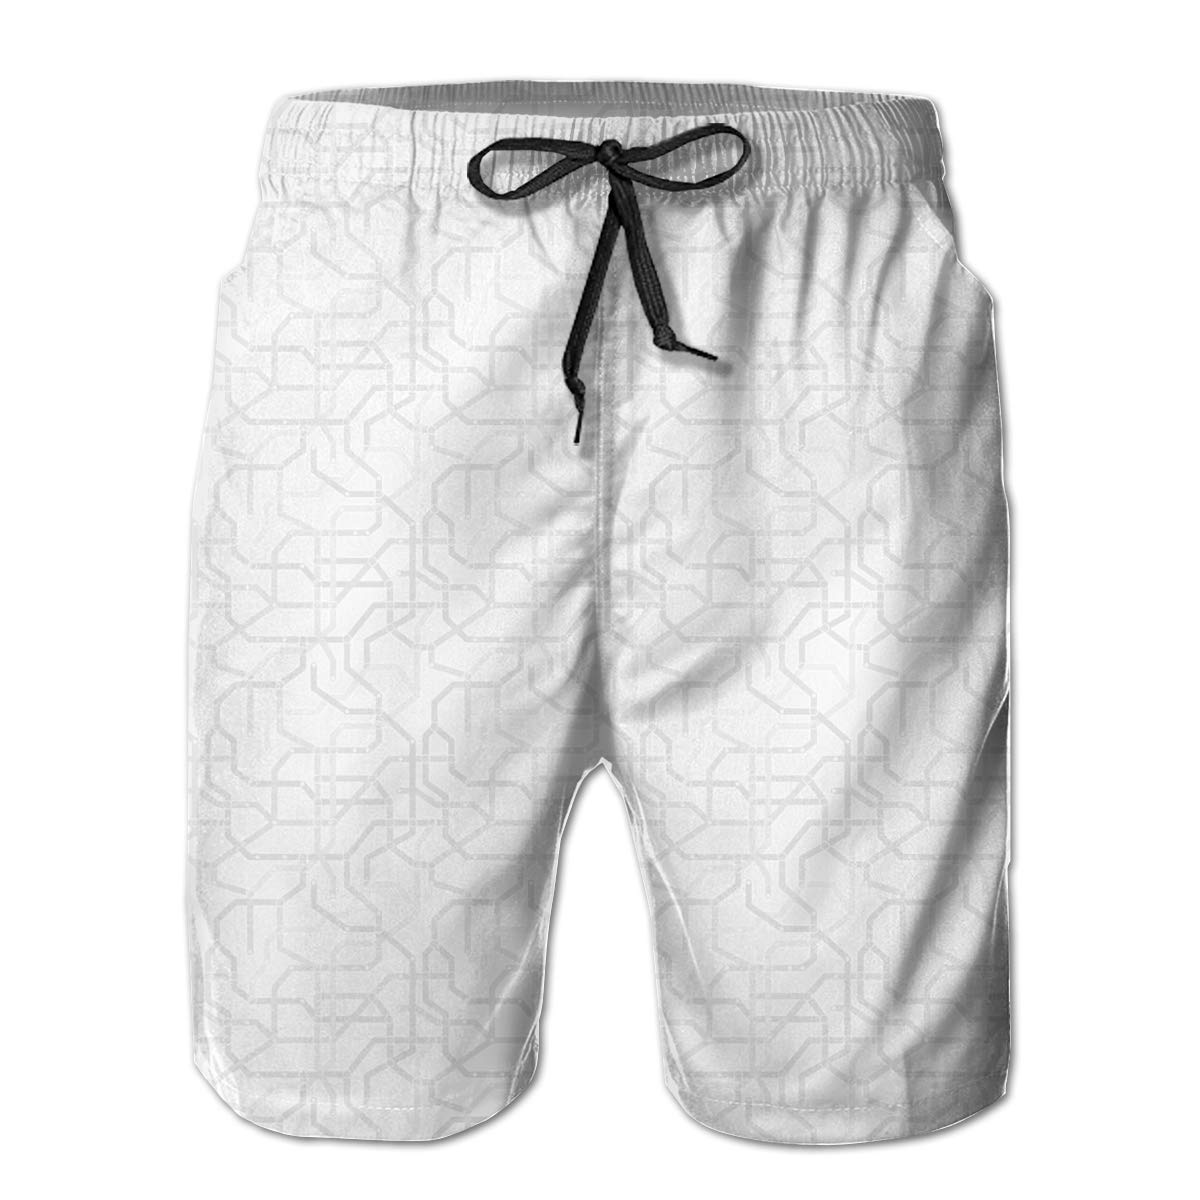 Polyester Gray and White Metro Pattern Board Shorts with Pockets Mens Athletic Swim Trunks